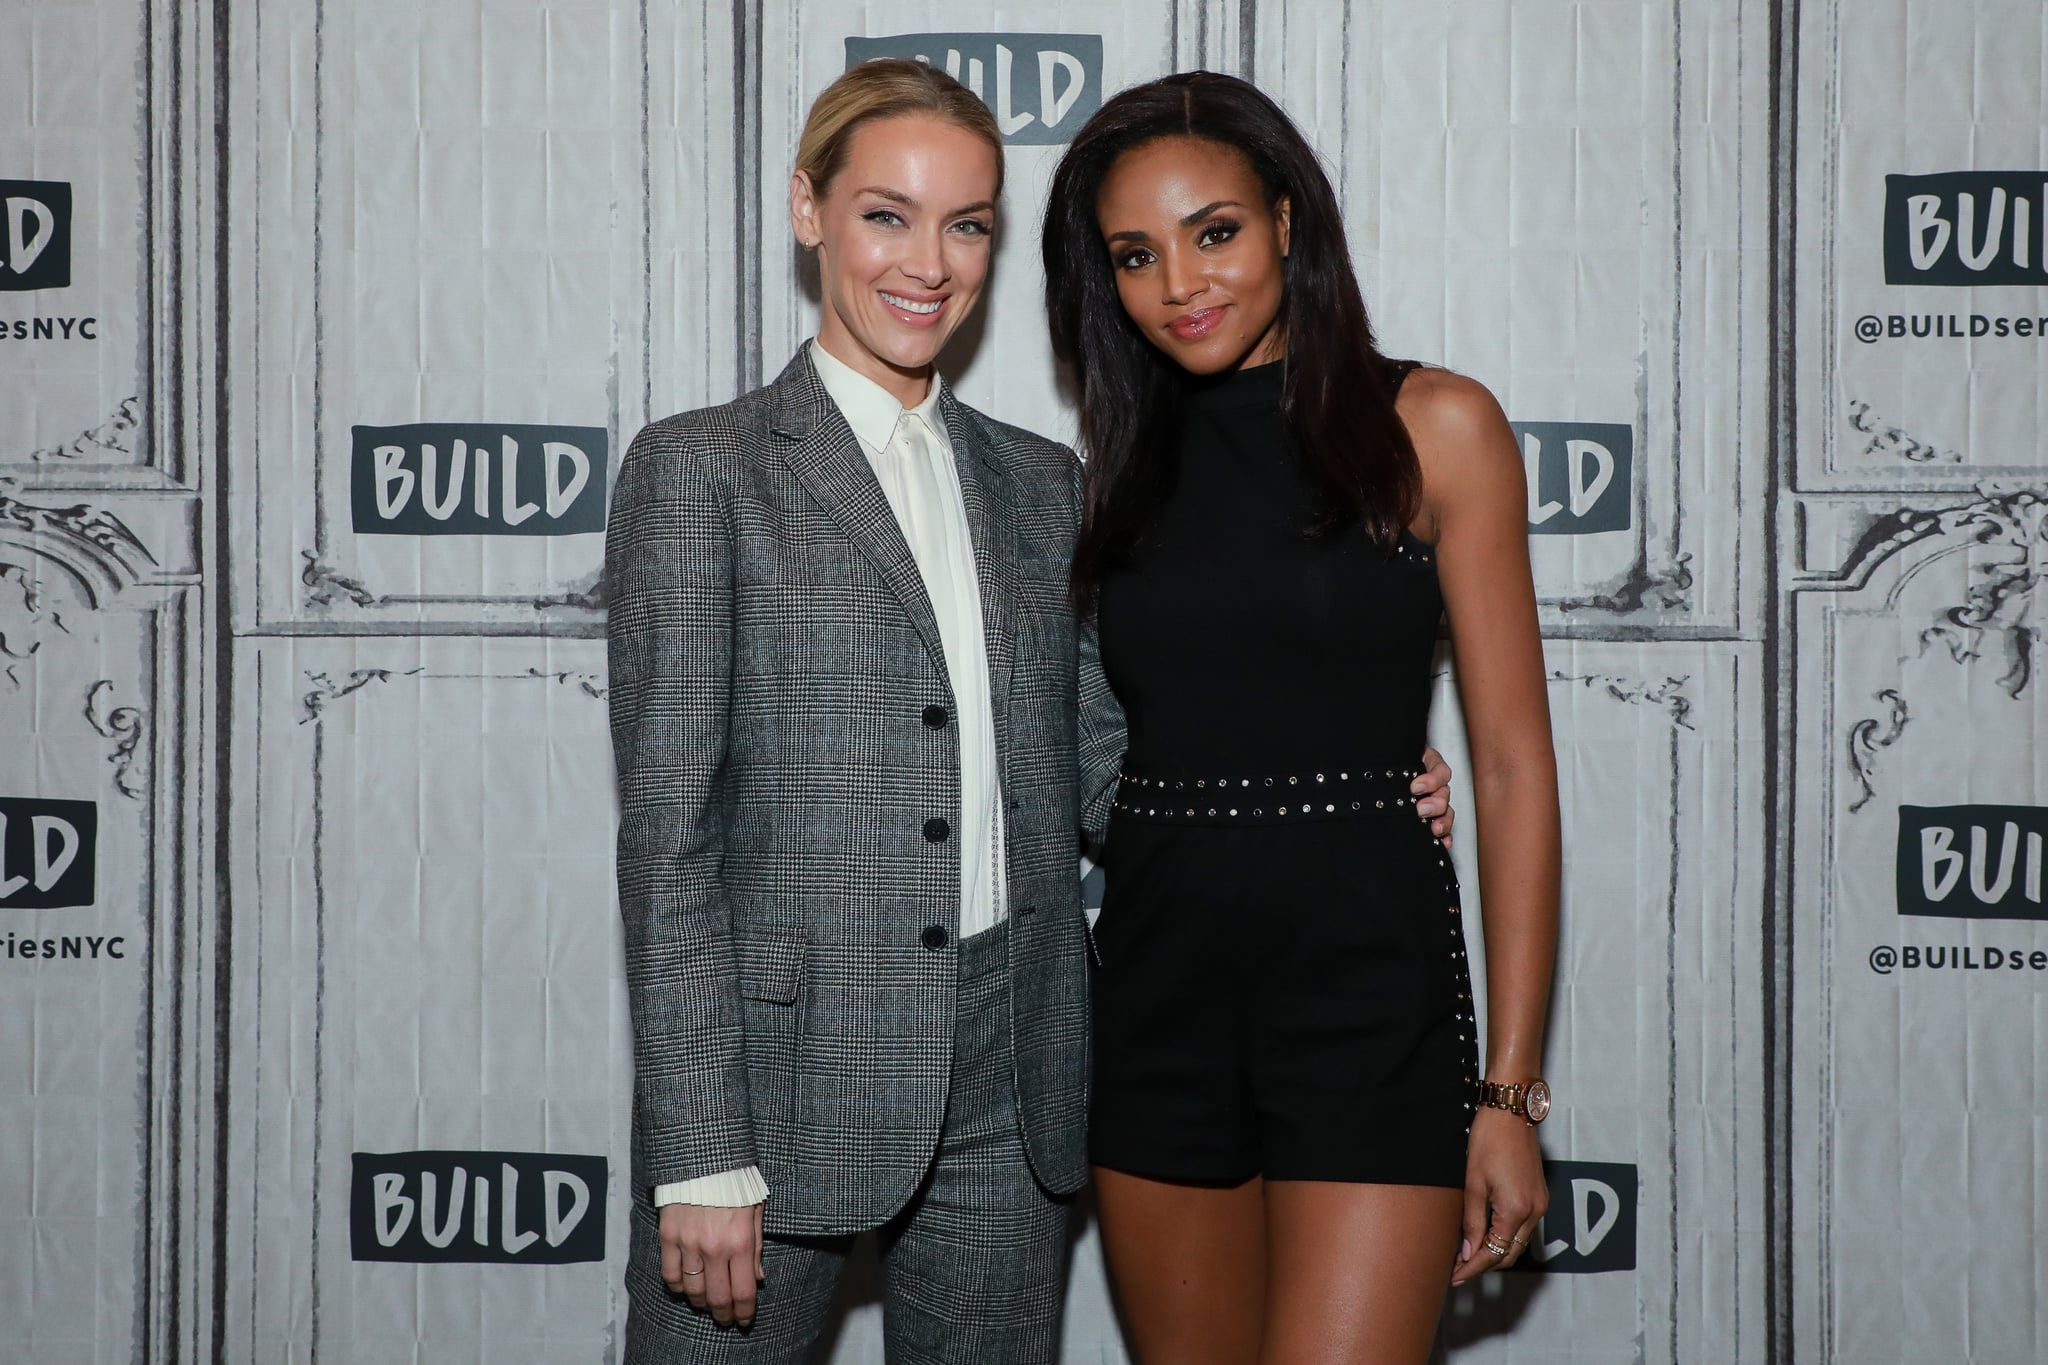 NEW YORK, NY - OCTOBER 07: Rachel Skarsten and Meagan Tandy at Build Studio on October 7, 2019 in New York City. (Photo by Jason Mendez/Getty Images)